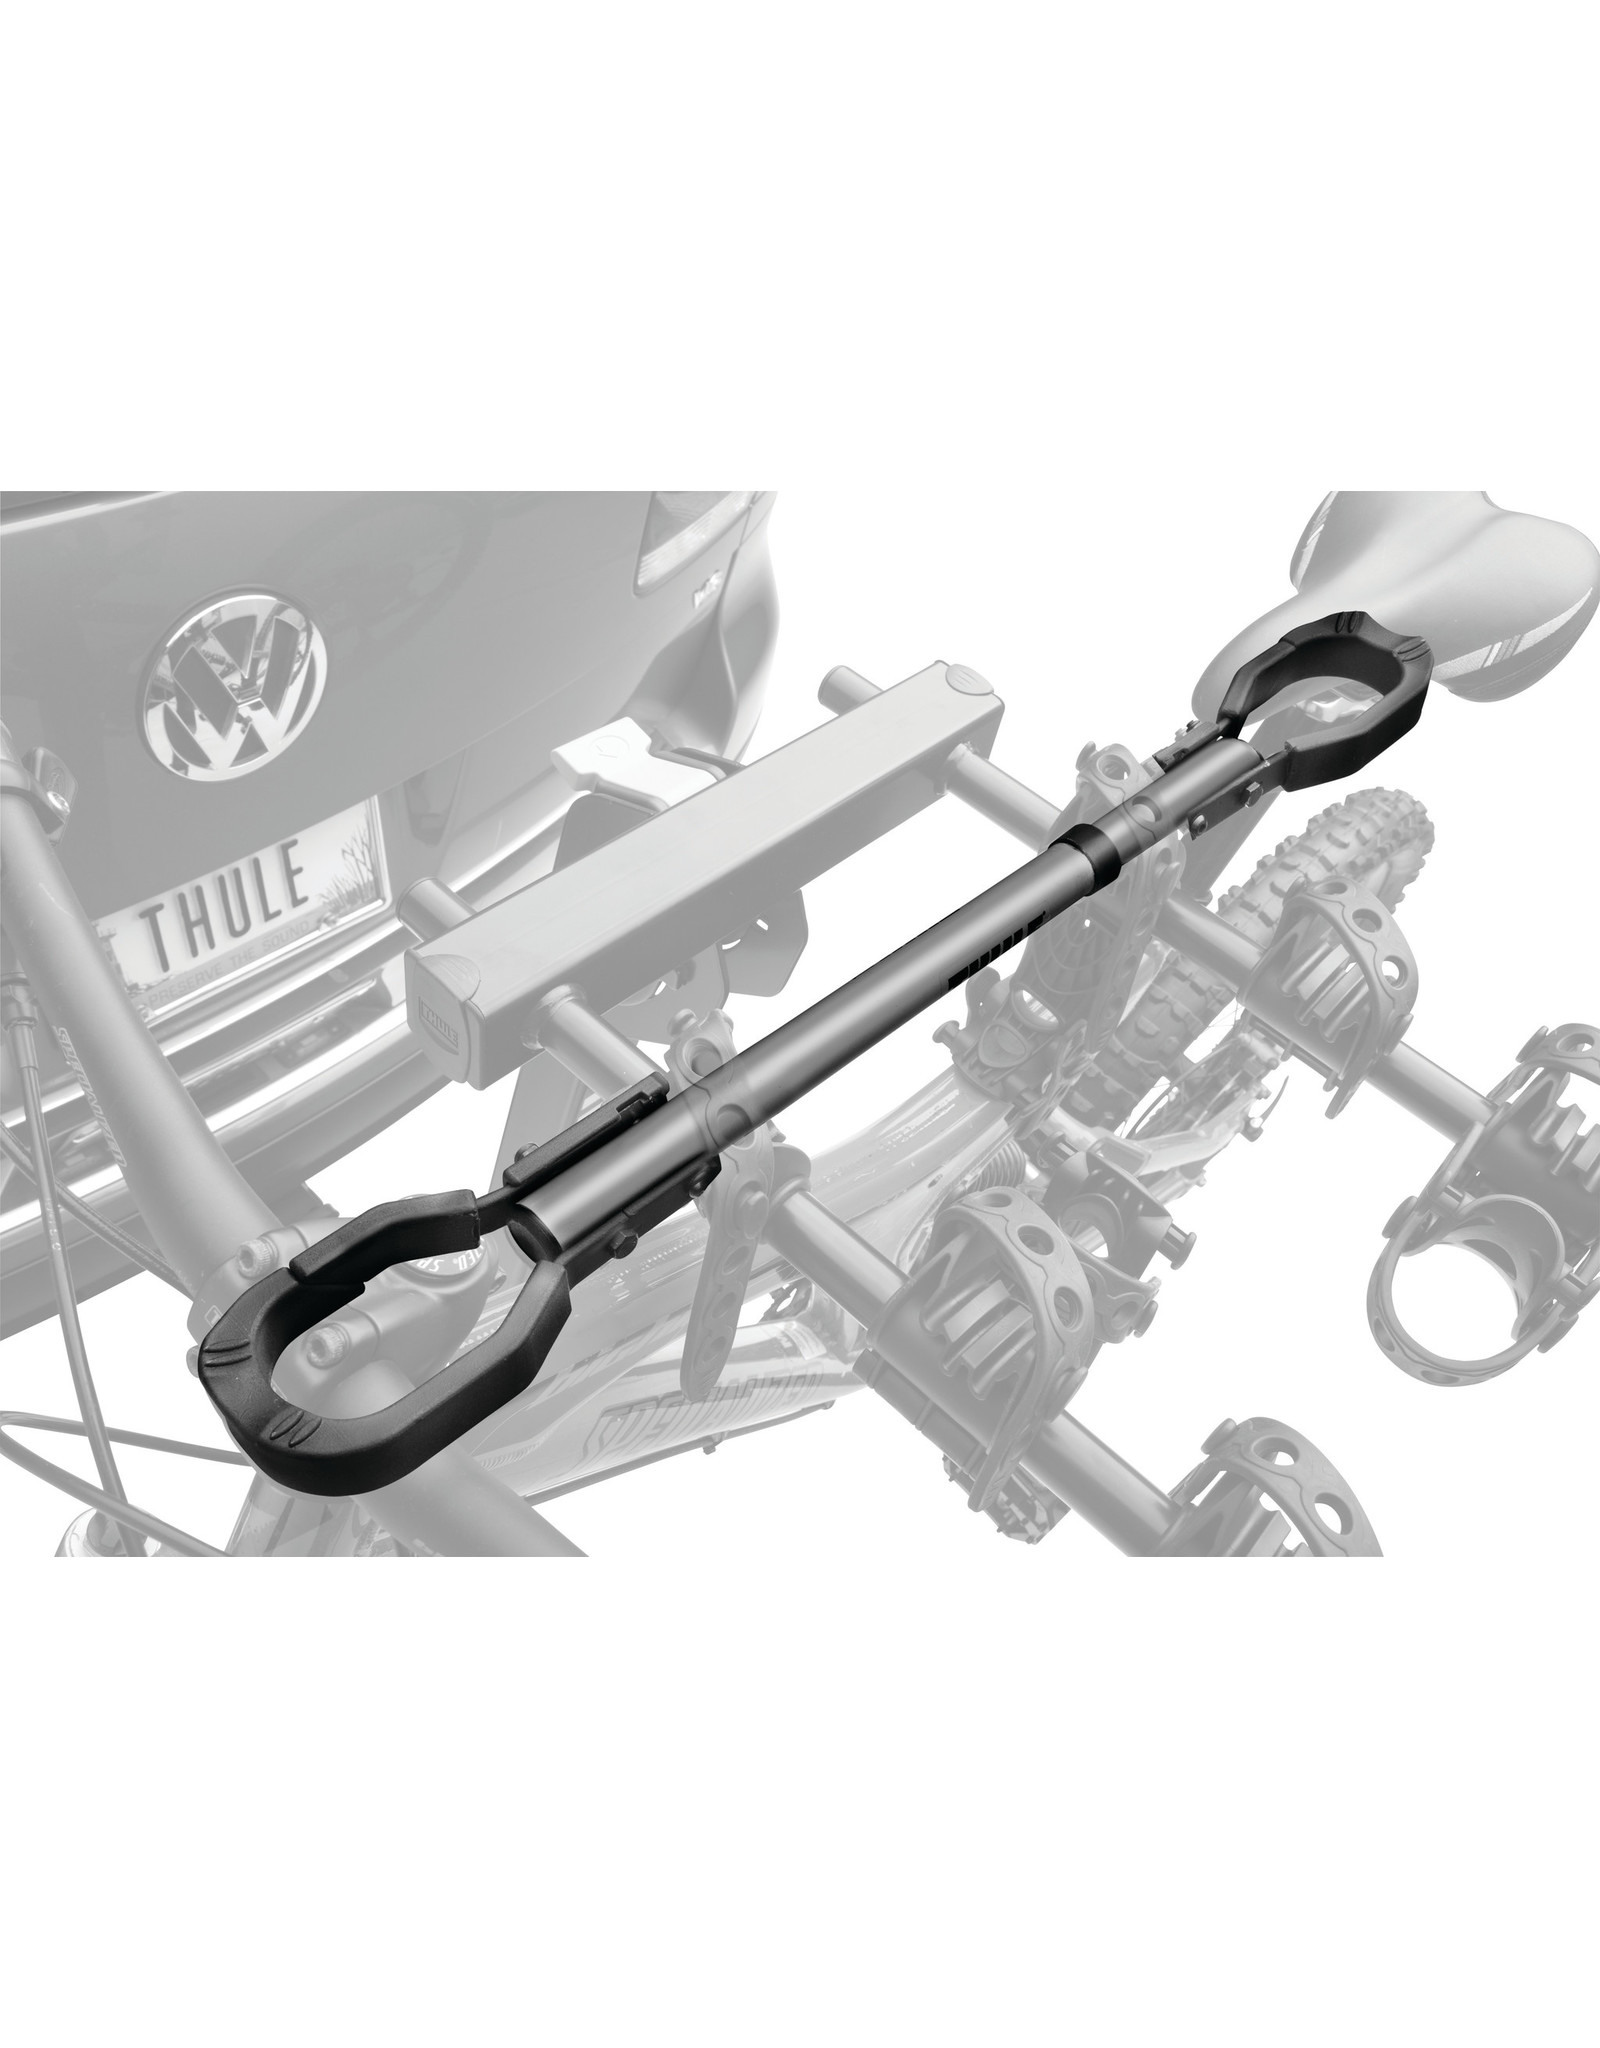 THULE Frame Adapter Silver/Black